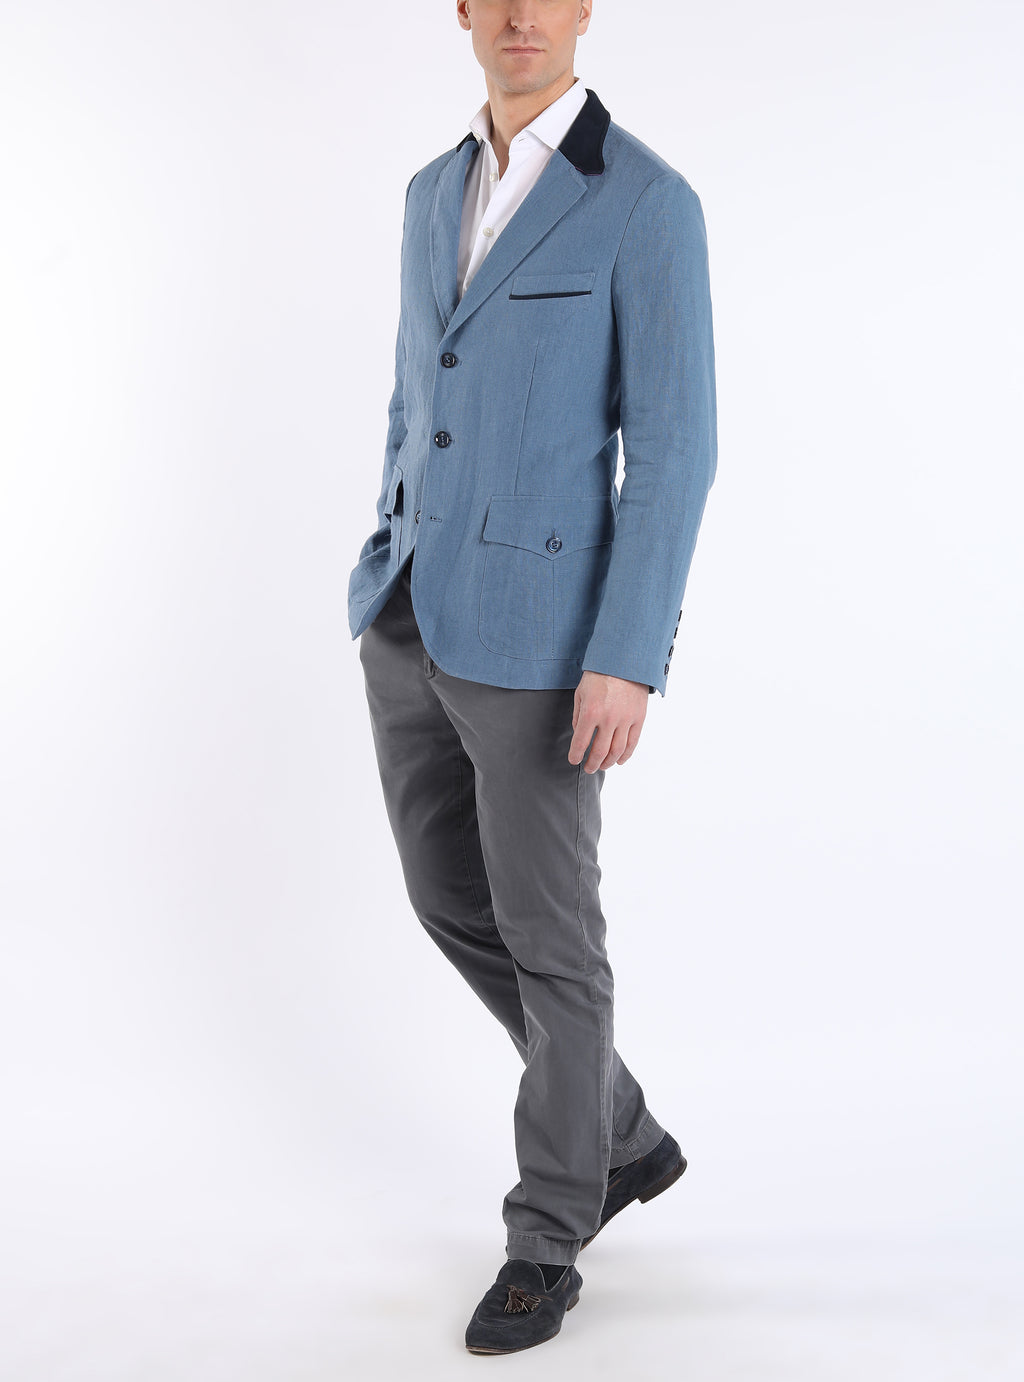 Country Blazer from Irish linen in blue